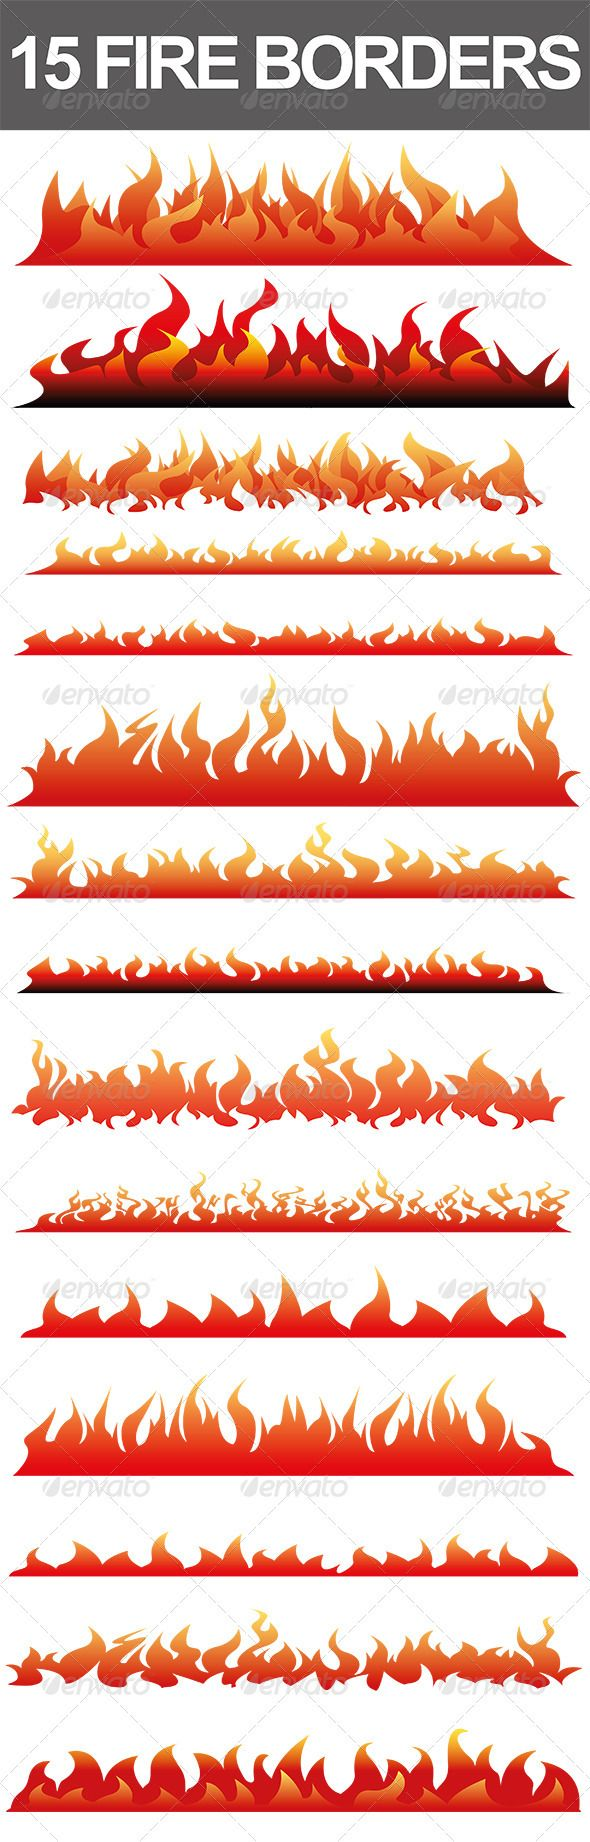 Flames white background border flame border w pictures to pin on - 15 Fire Borders